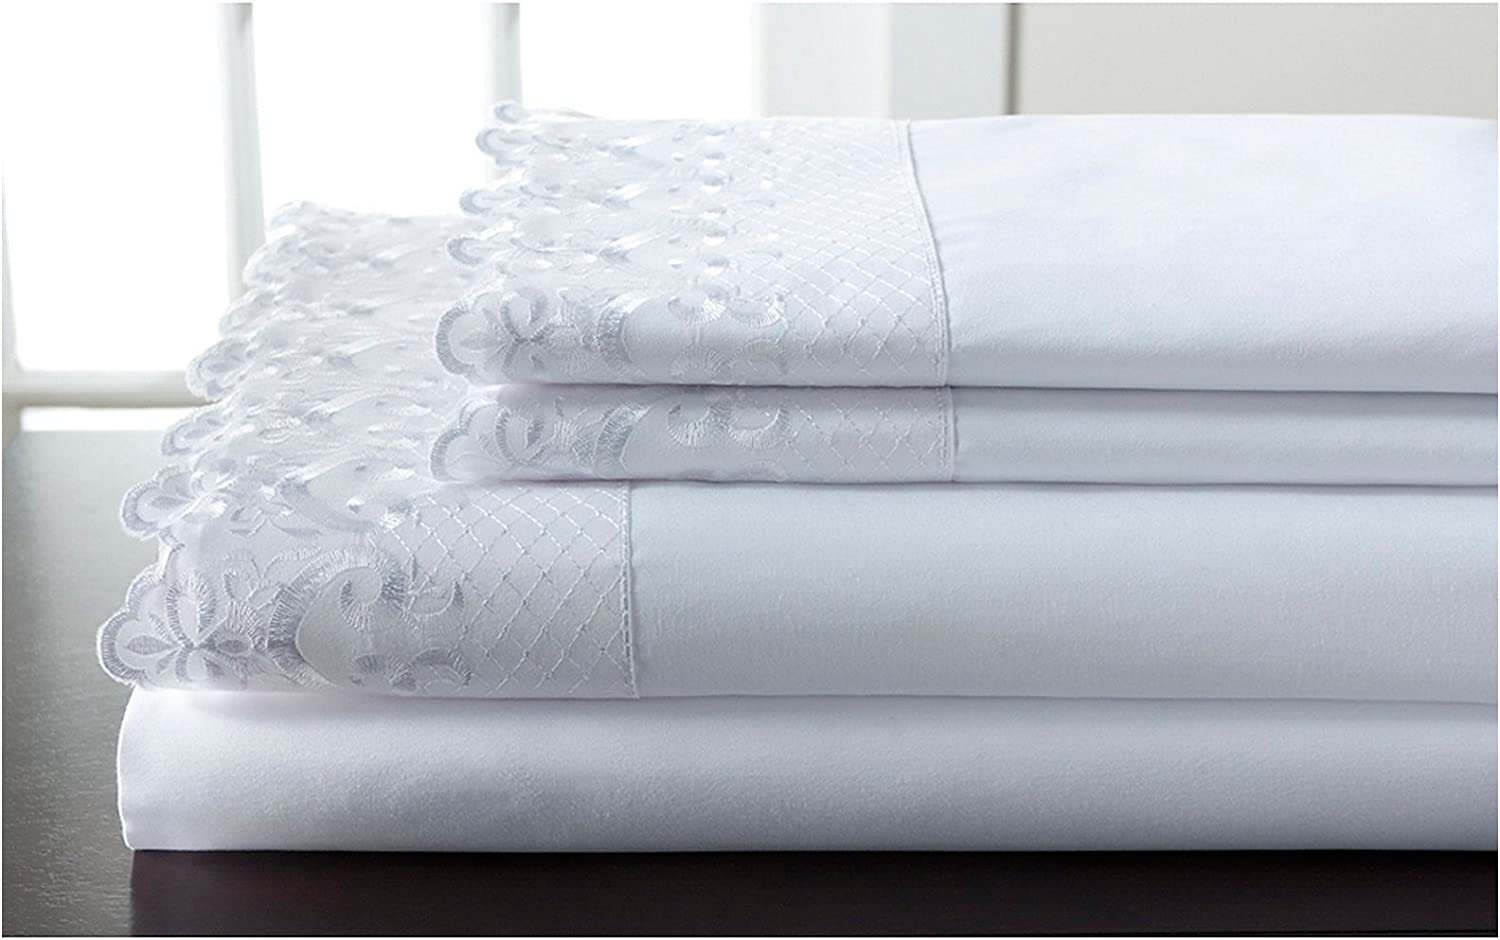 Elite Home Products Inc. Hotel Lace Microfiber Sheet Set, White, King